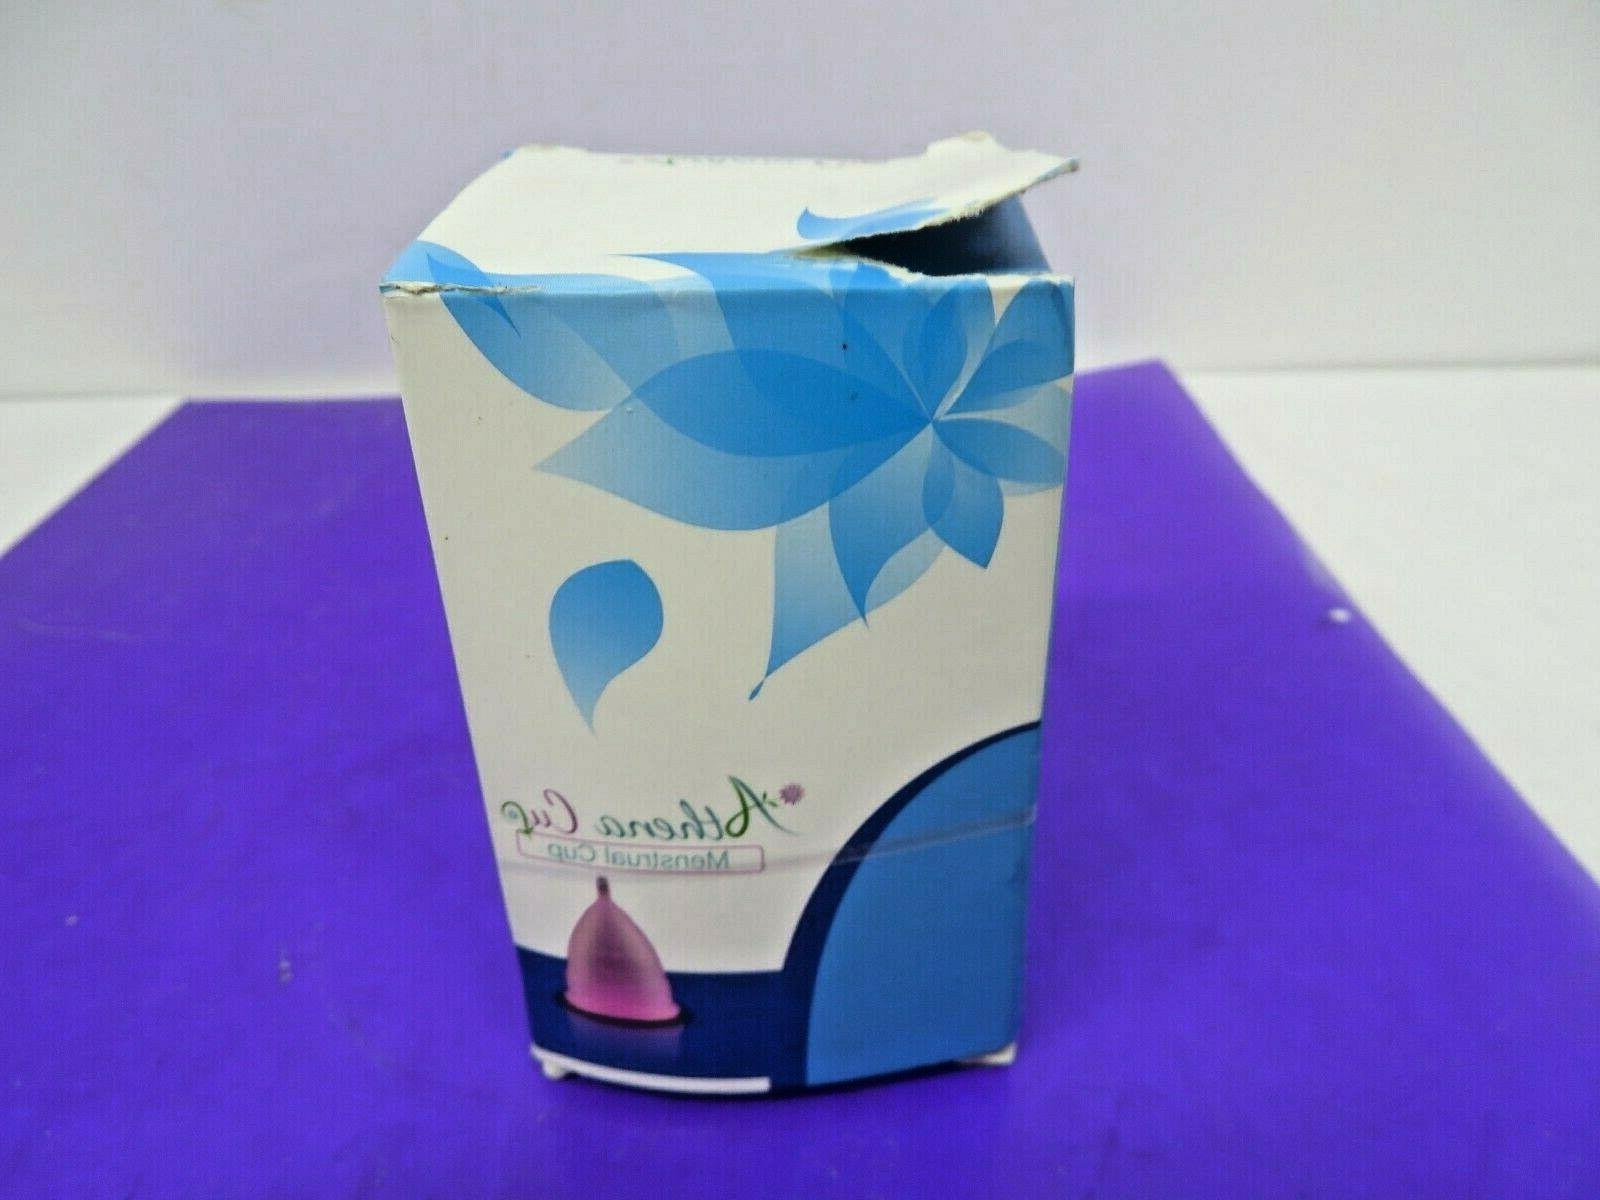 athena menstrual cup 1 recommended period cup